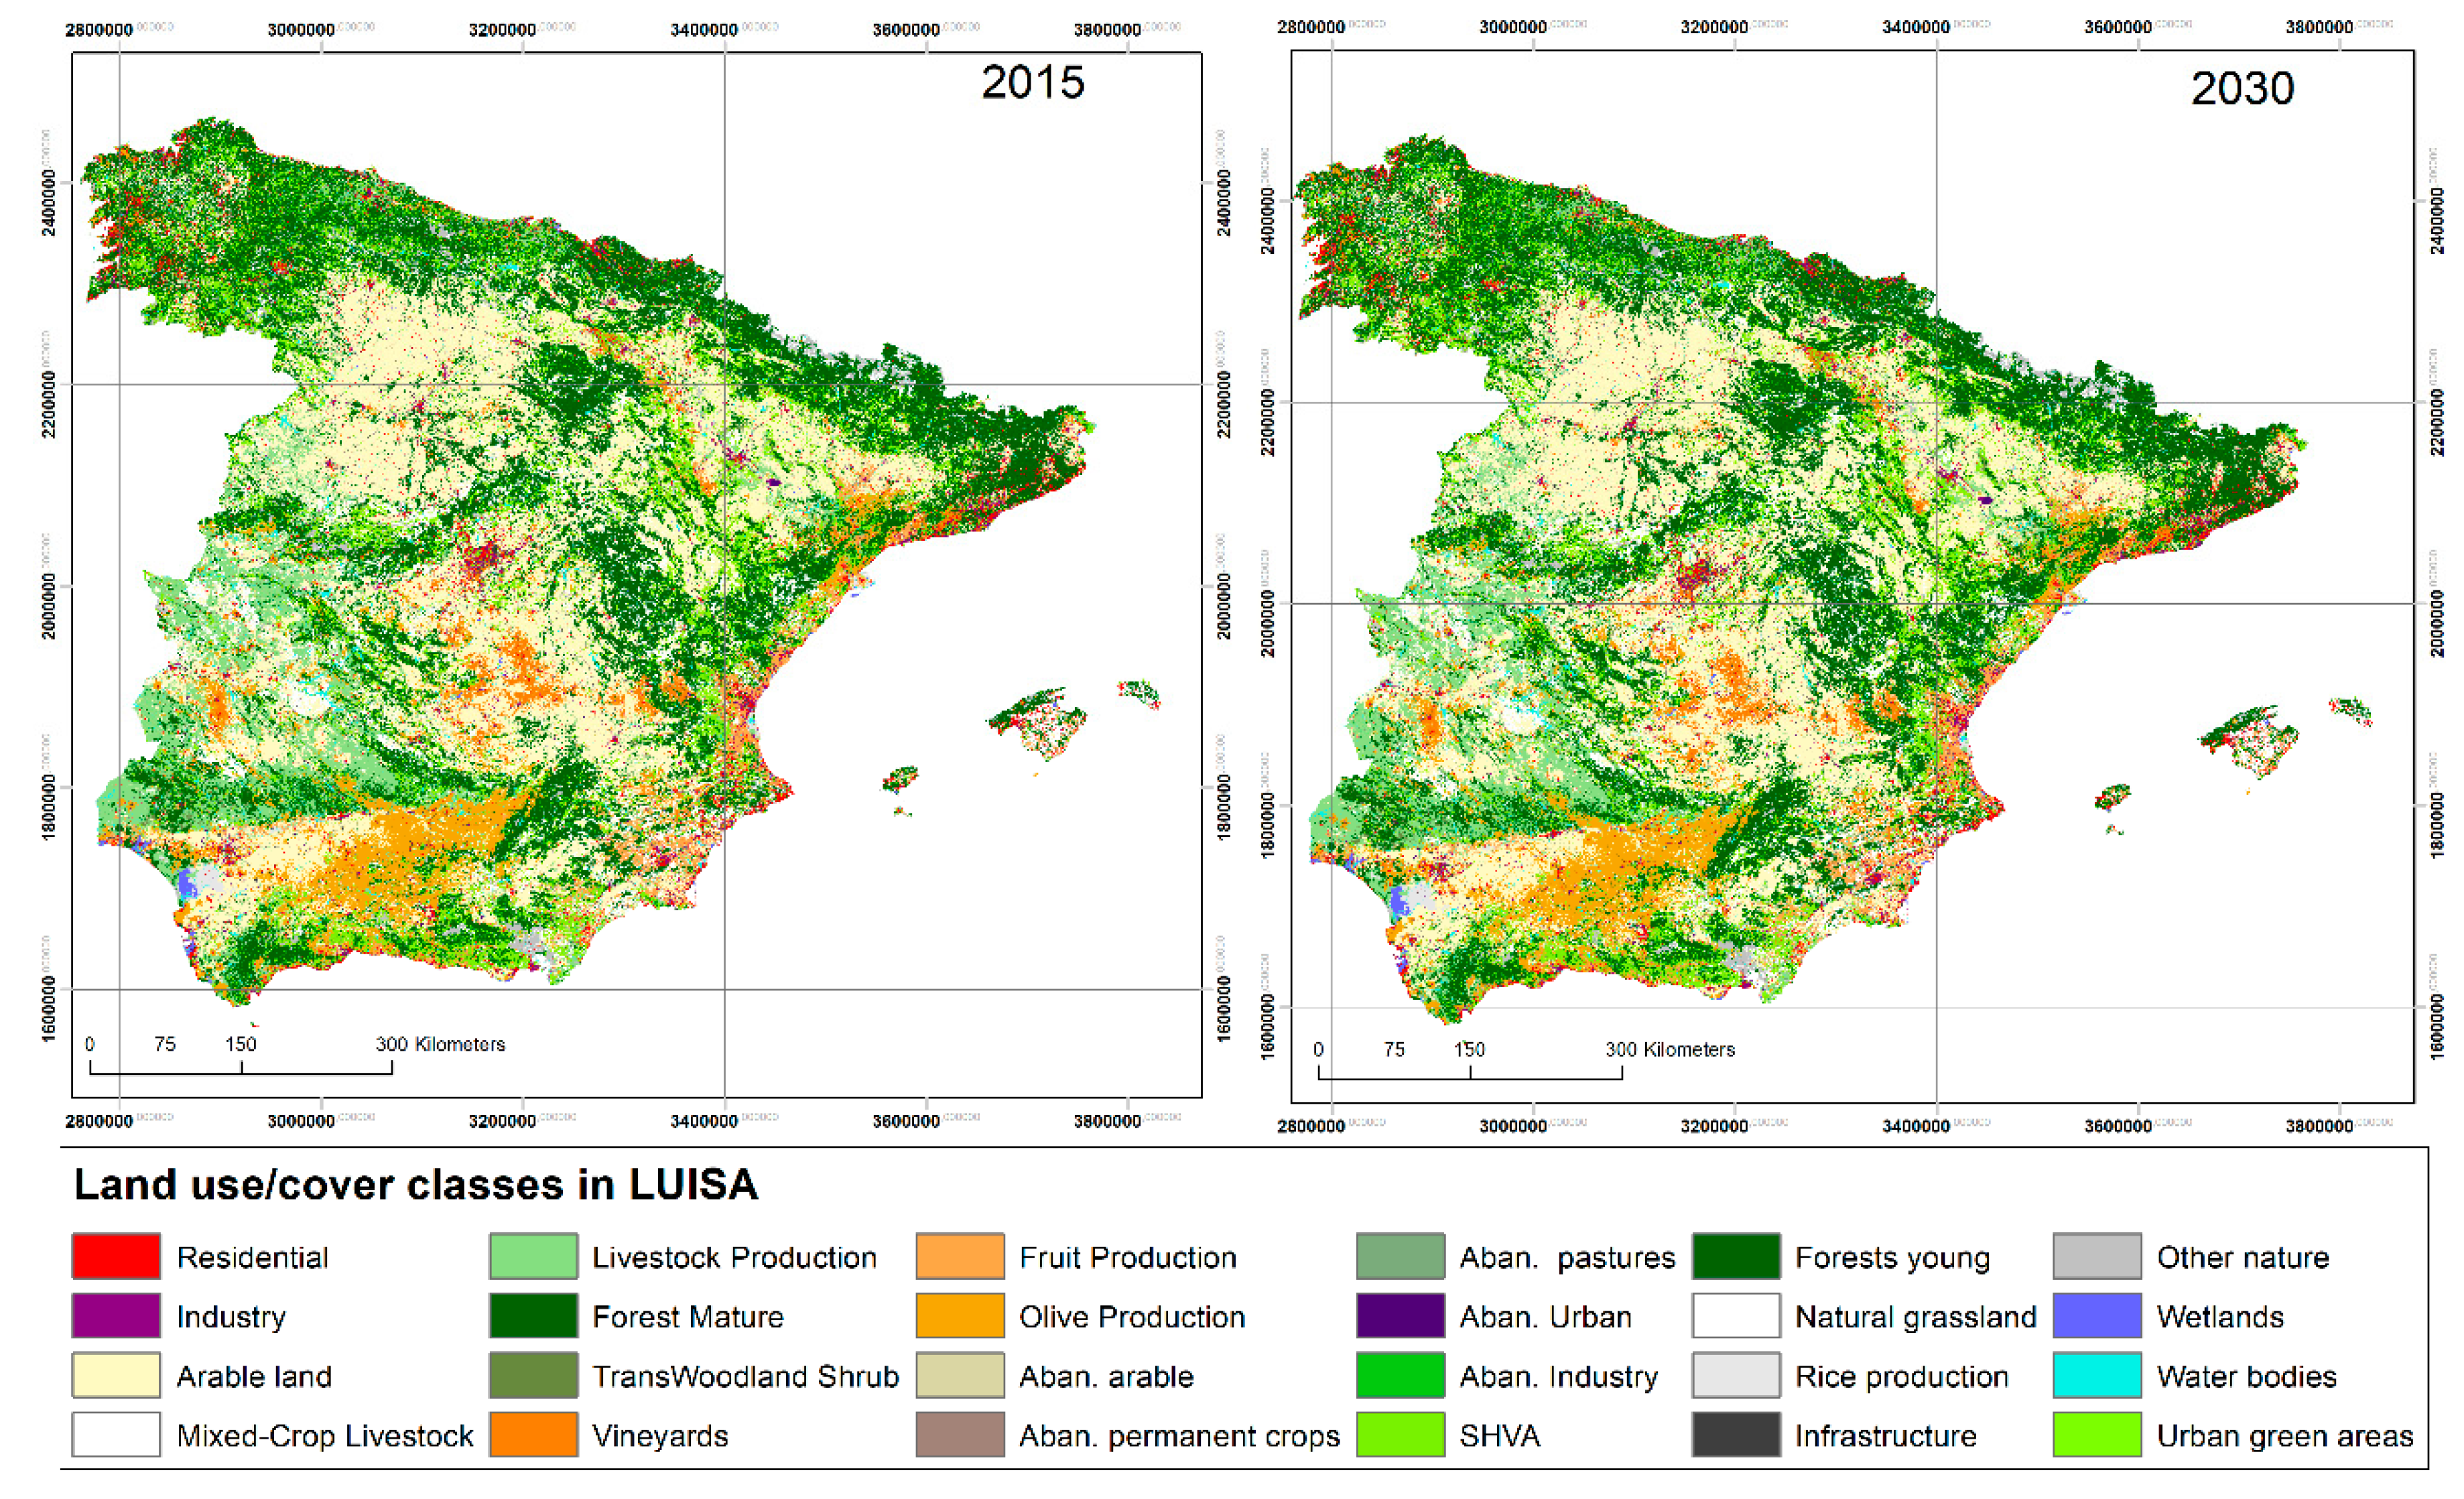 Sustainability Free Full Text An Assessment And Spatial Modelling Of Agricultural Land Abandonment In Spain 2015 2030 Html